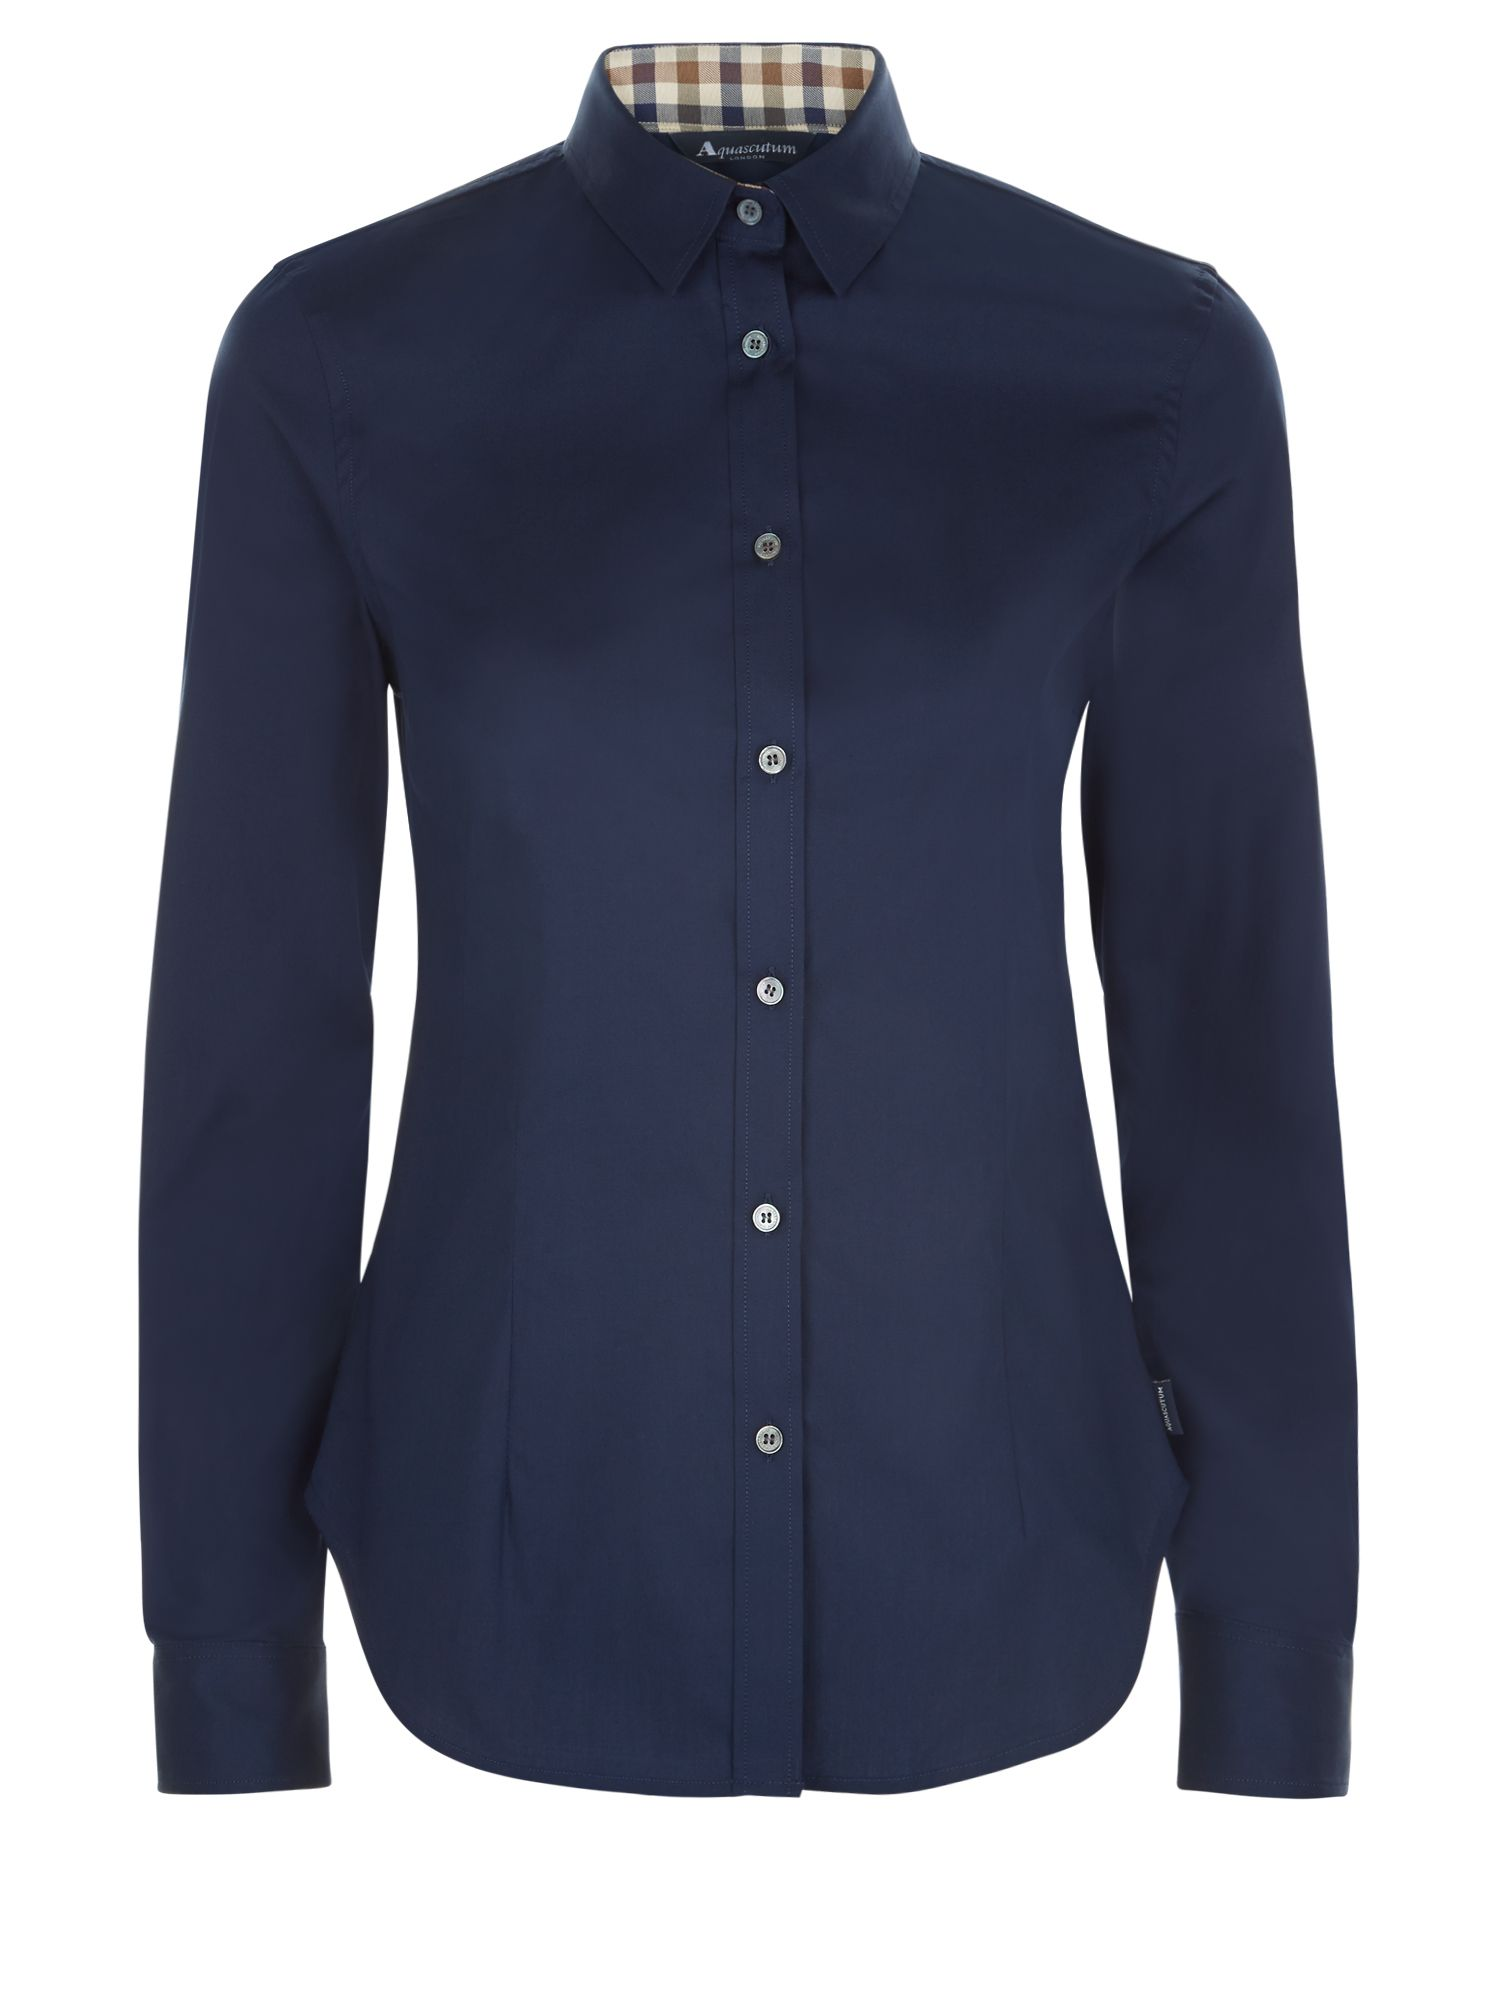 Aquascutum Bowten Club Check Shirt, Blue